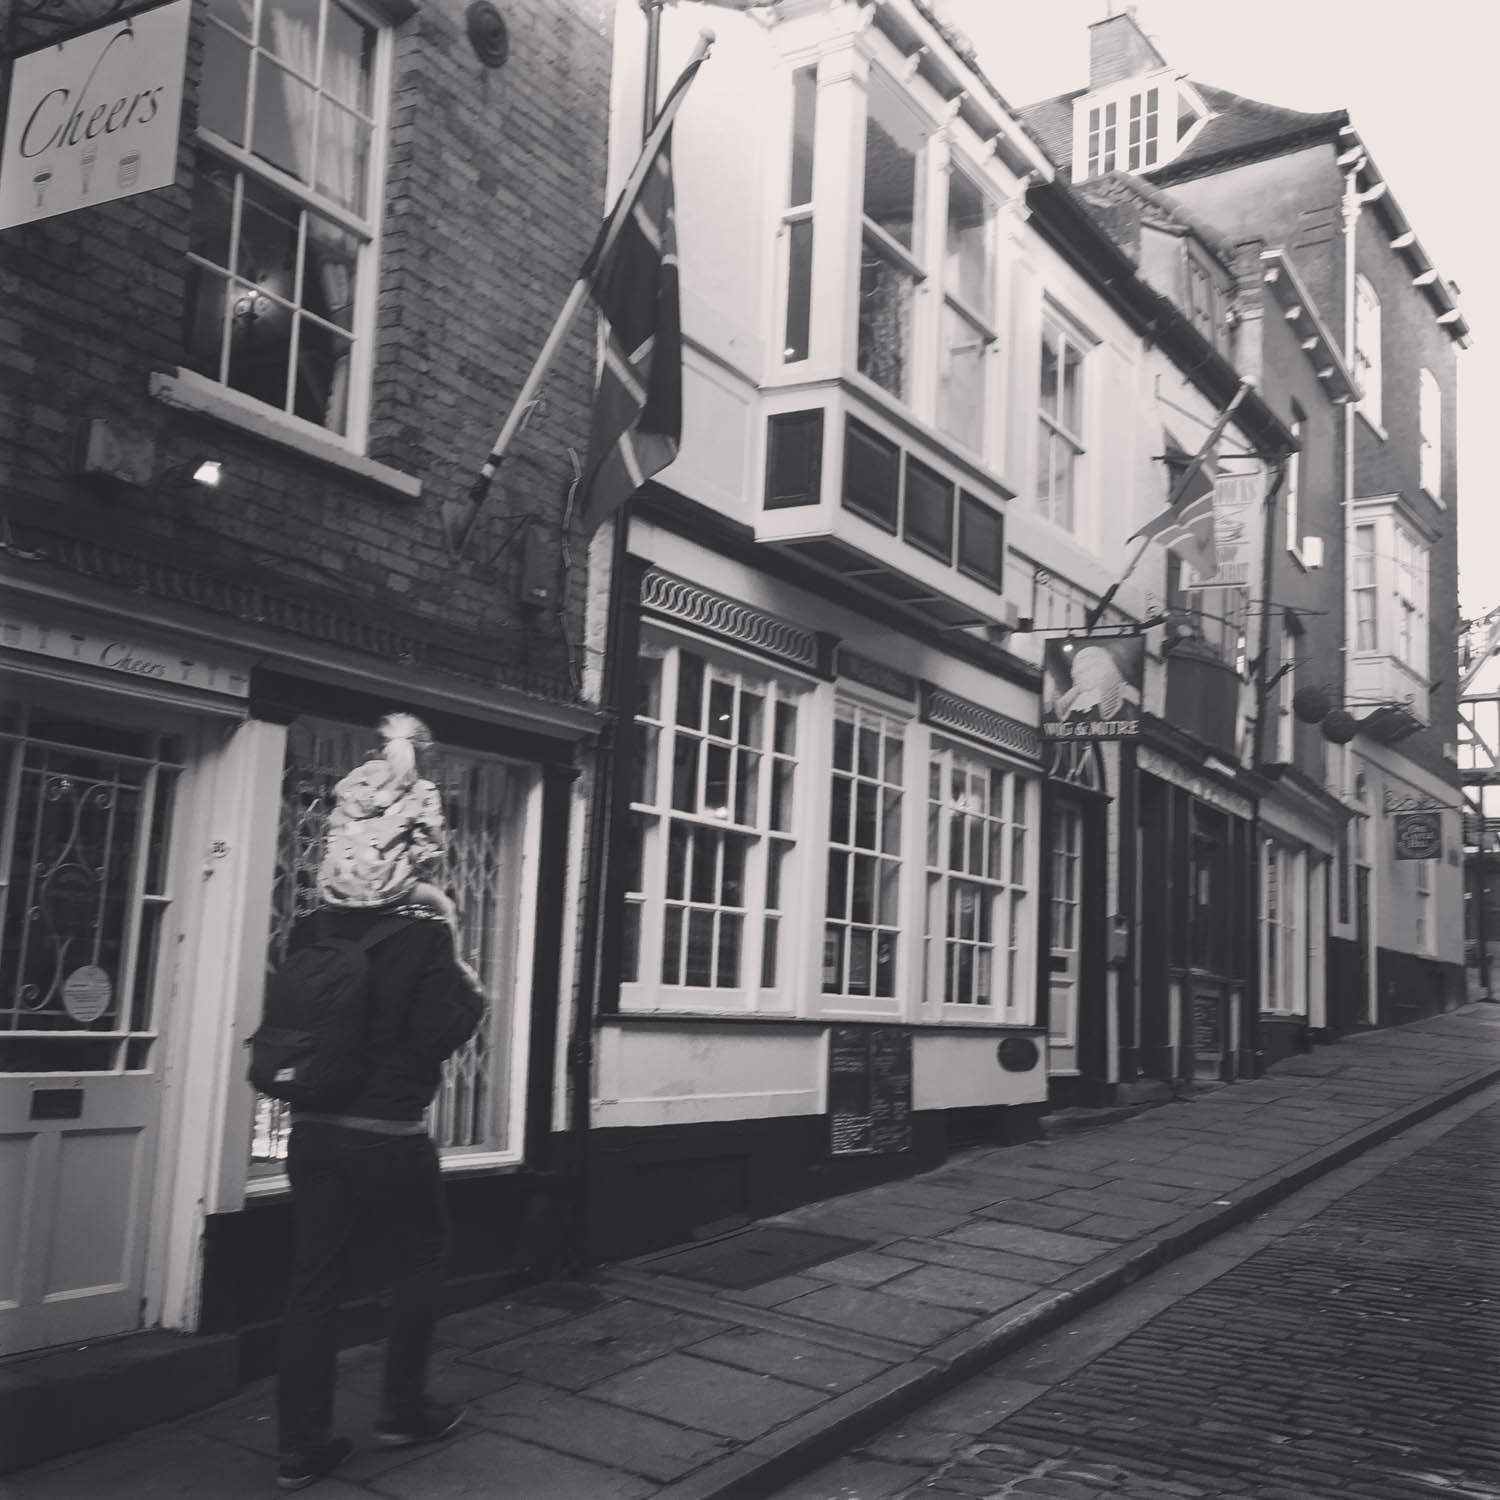 Steep Hill - Photograph by Nicky Chapman